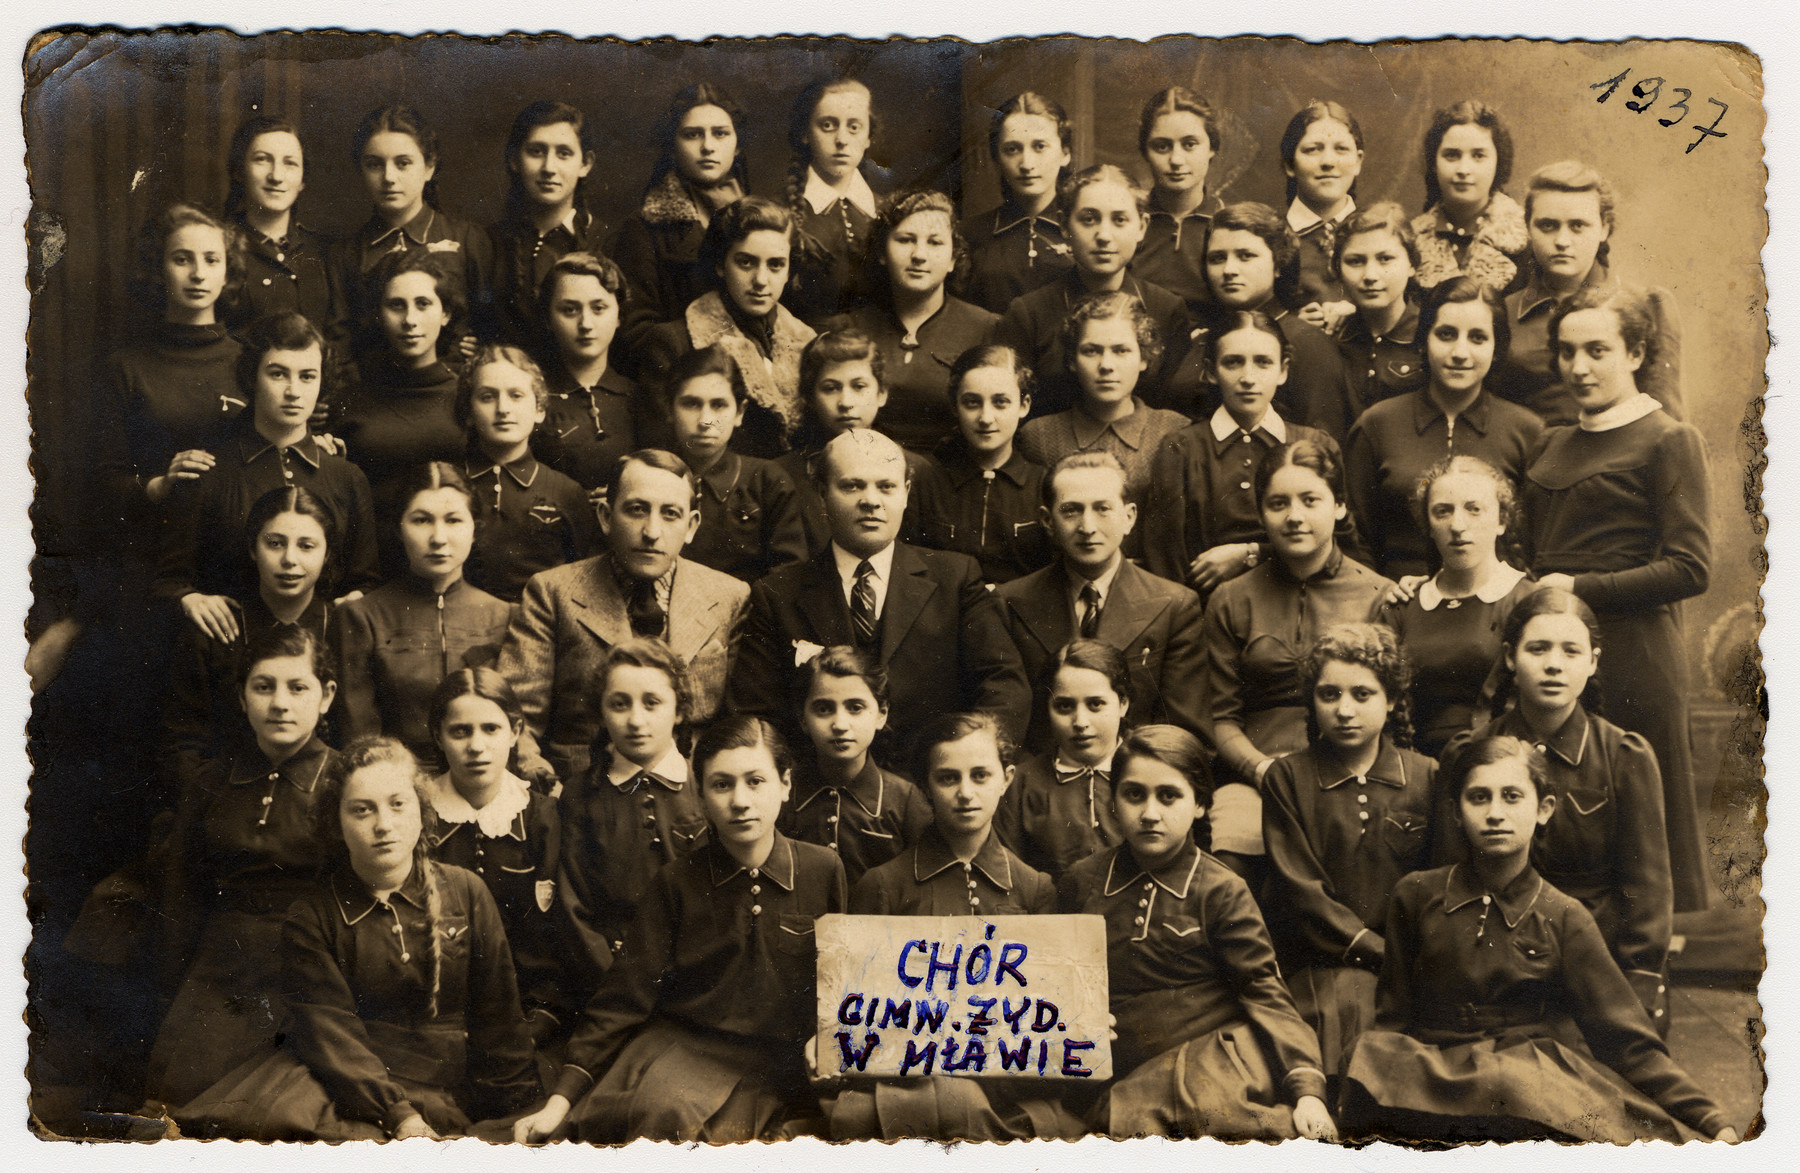 Group portrait of the choir of the Jewish gymansium in Mlawa.  Seated in the second row are the conductor Issachar Fater, Rosebery d'Arguto (real name Martin Rosenberg) and Dr. L. Rozman.